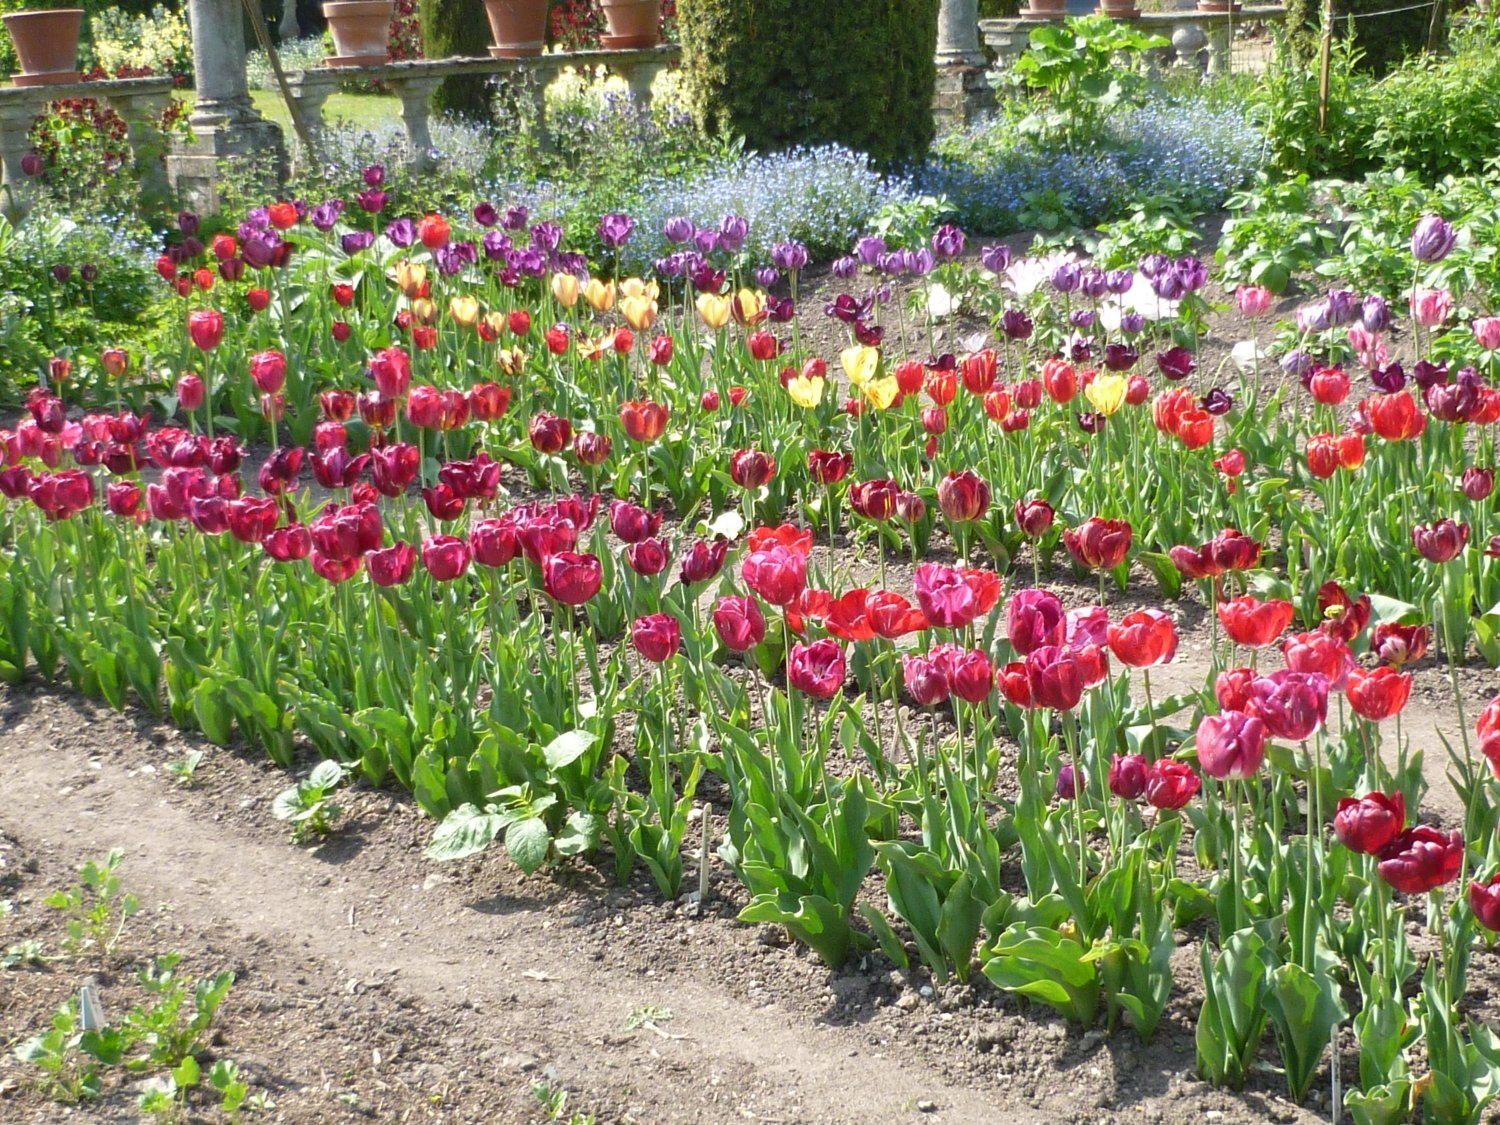 Rows of coulourful tulips at Netherall Manor, Cambs